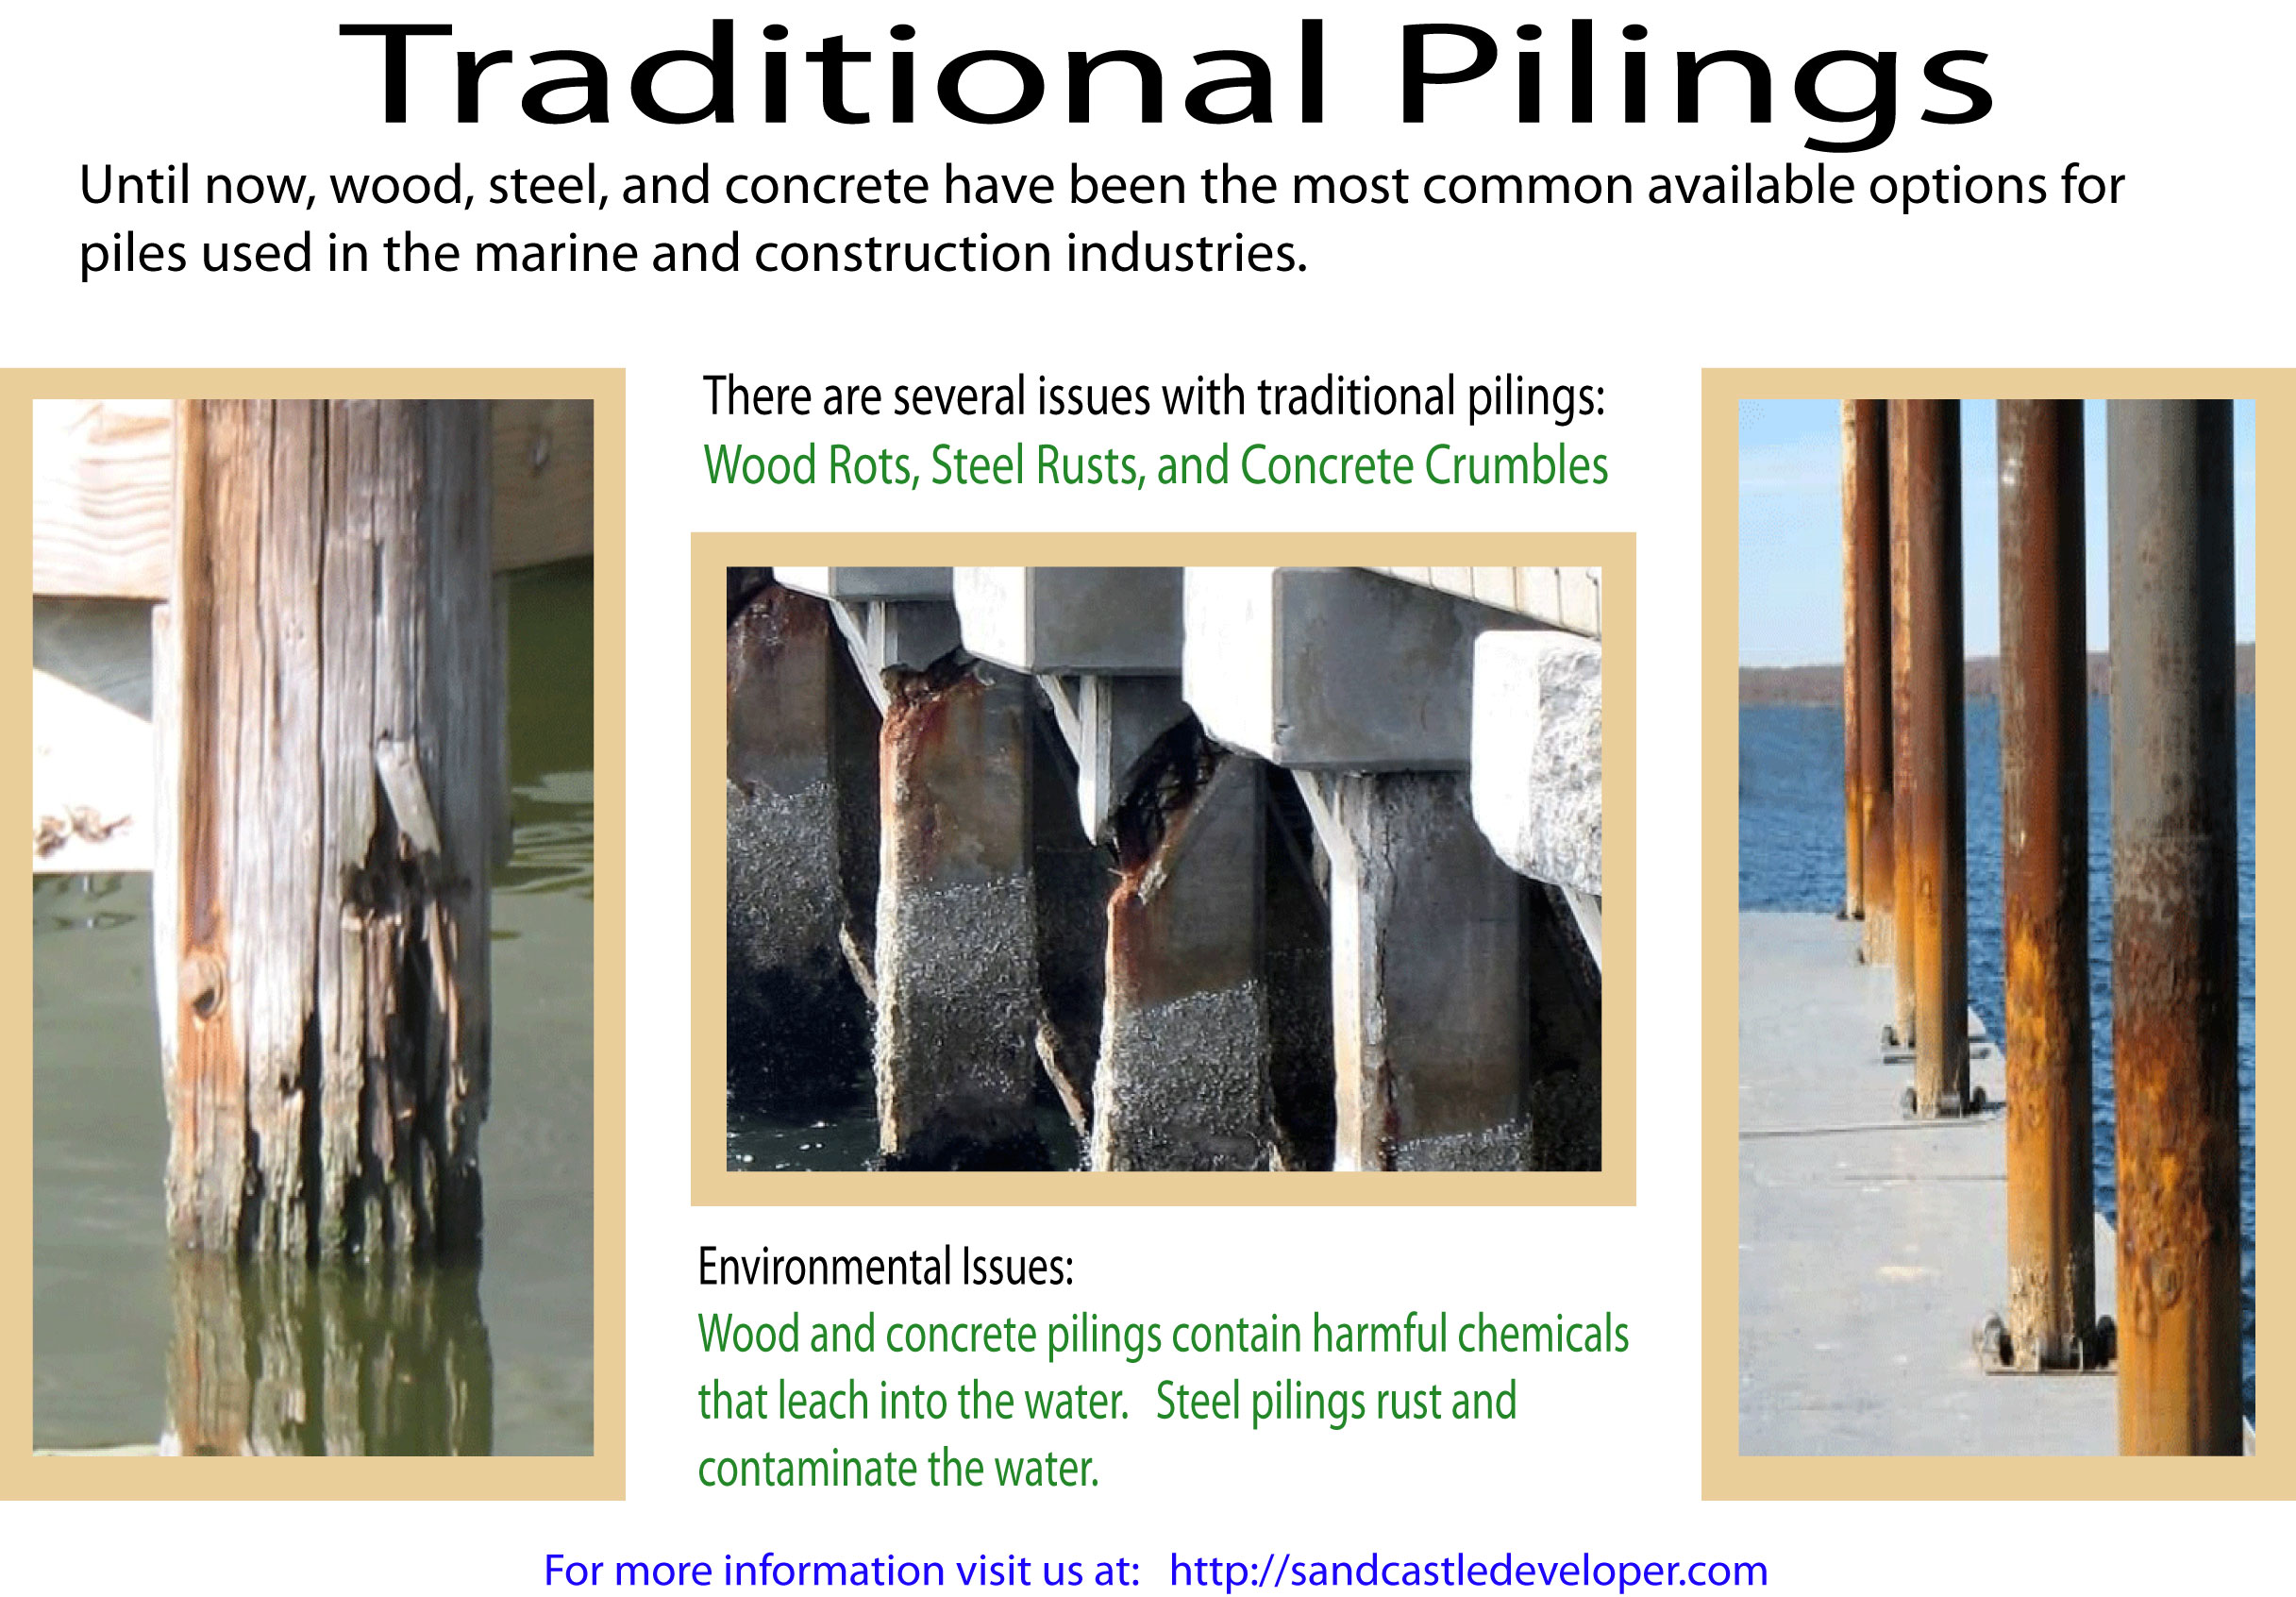 Tradition Pilings